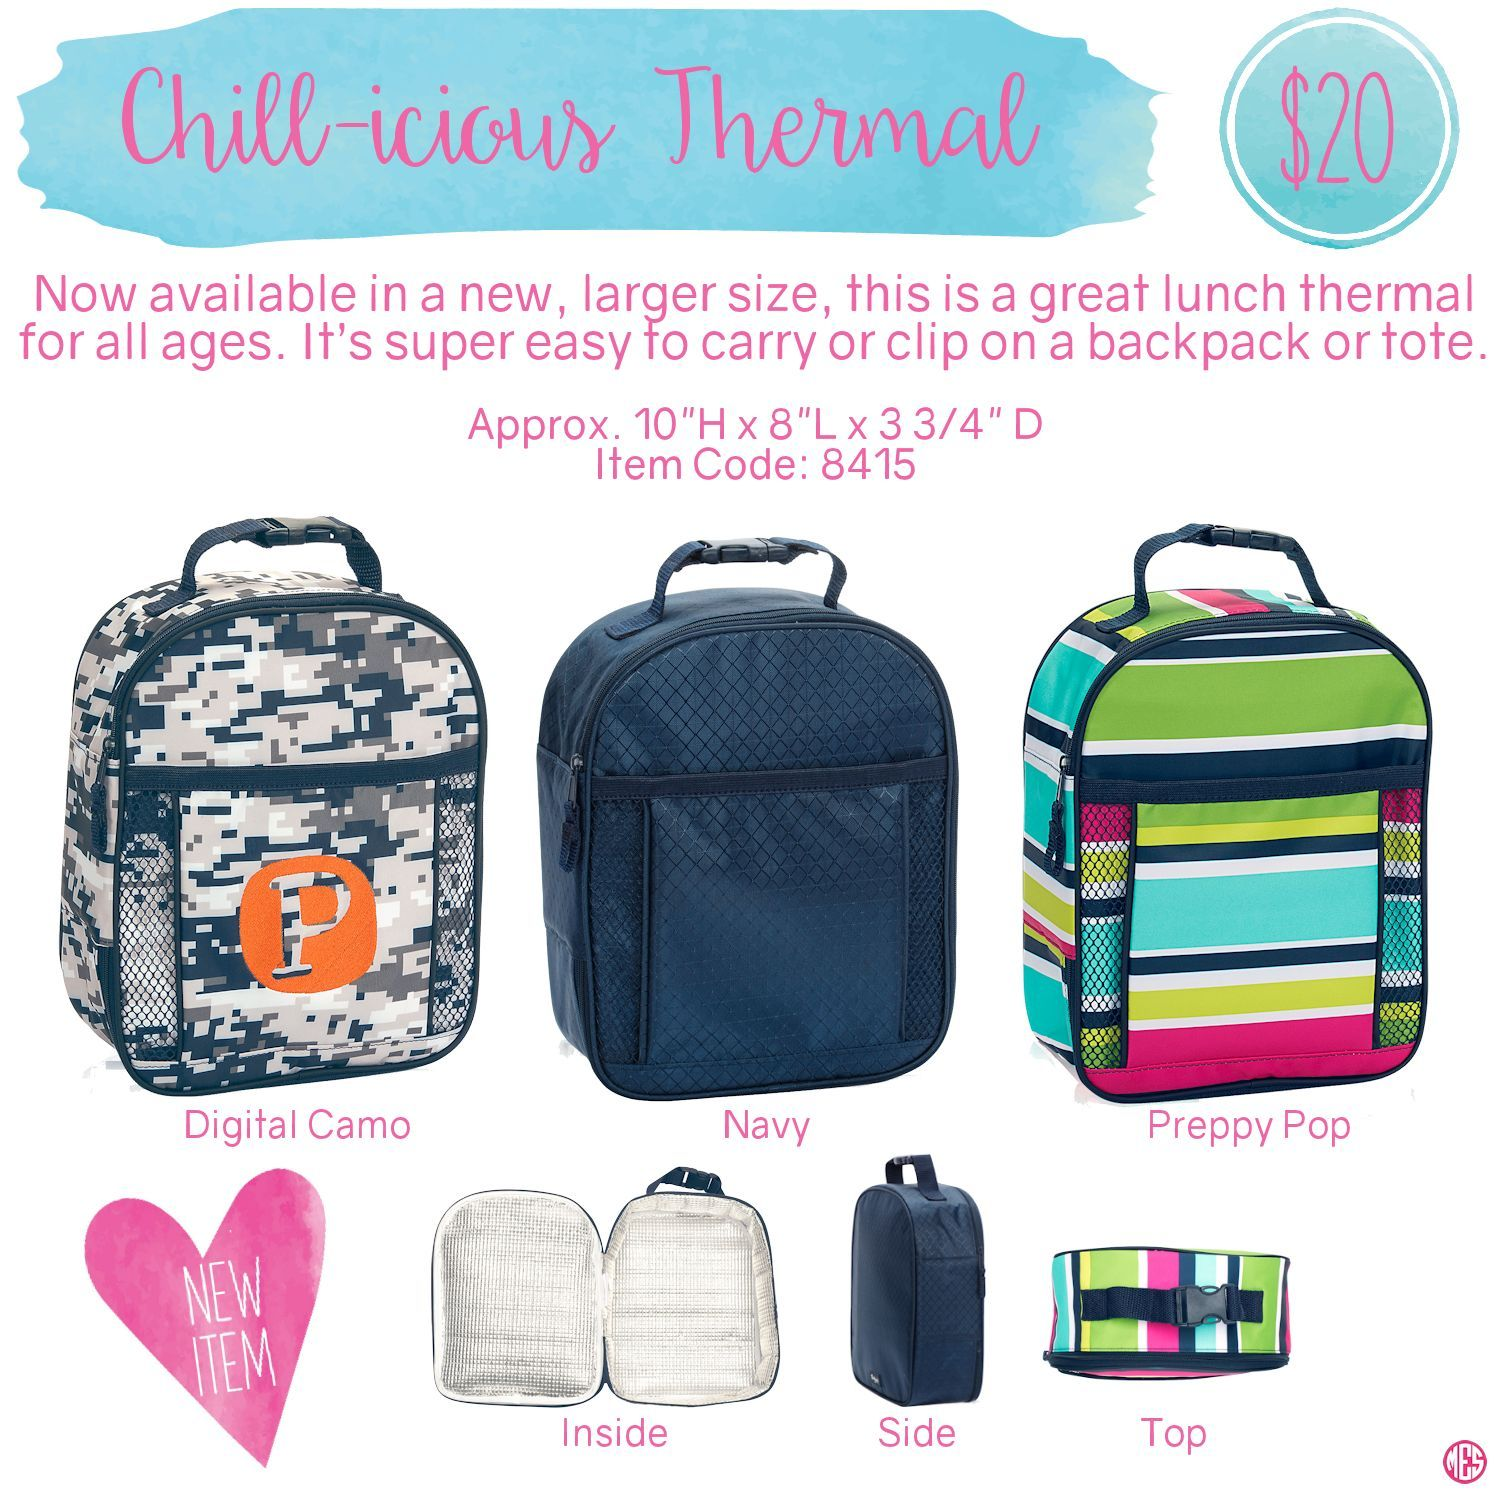 Oh snap bin ideas - Chill Icious Thermal By Thirty One Spring Summer 2016 Click To